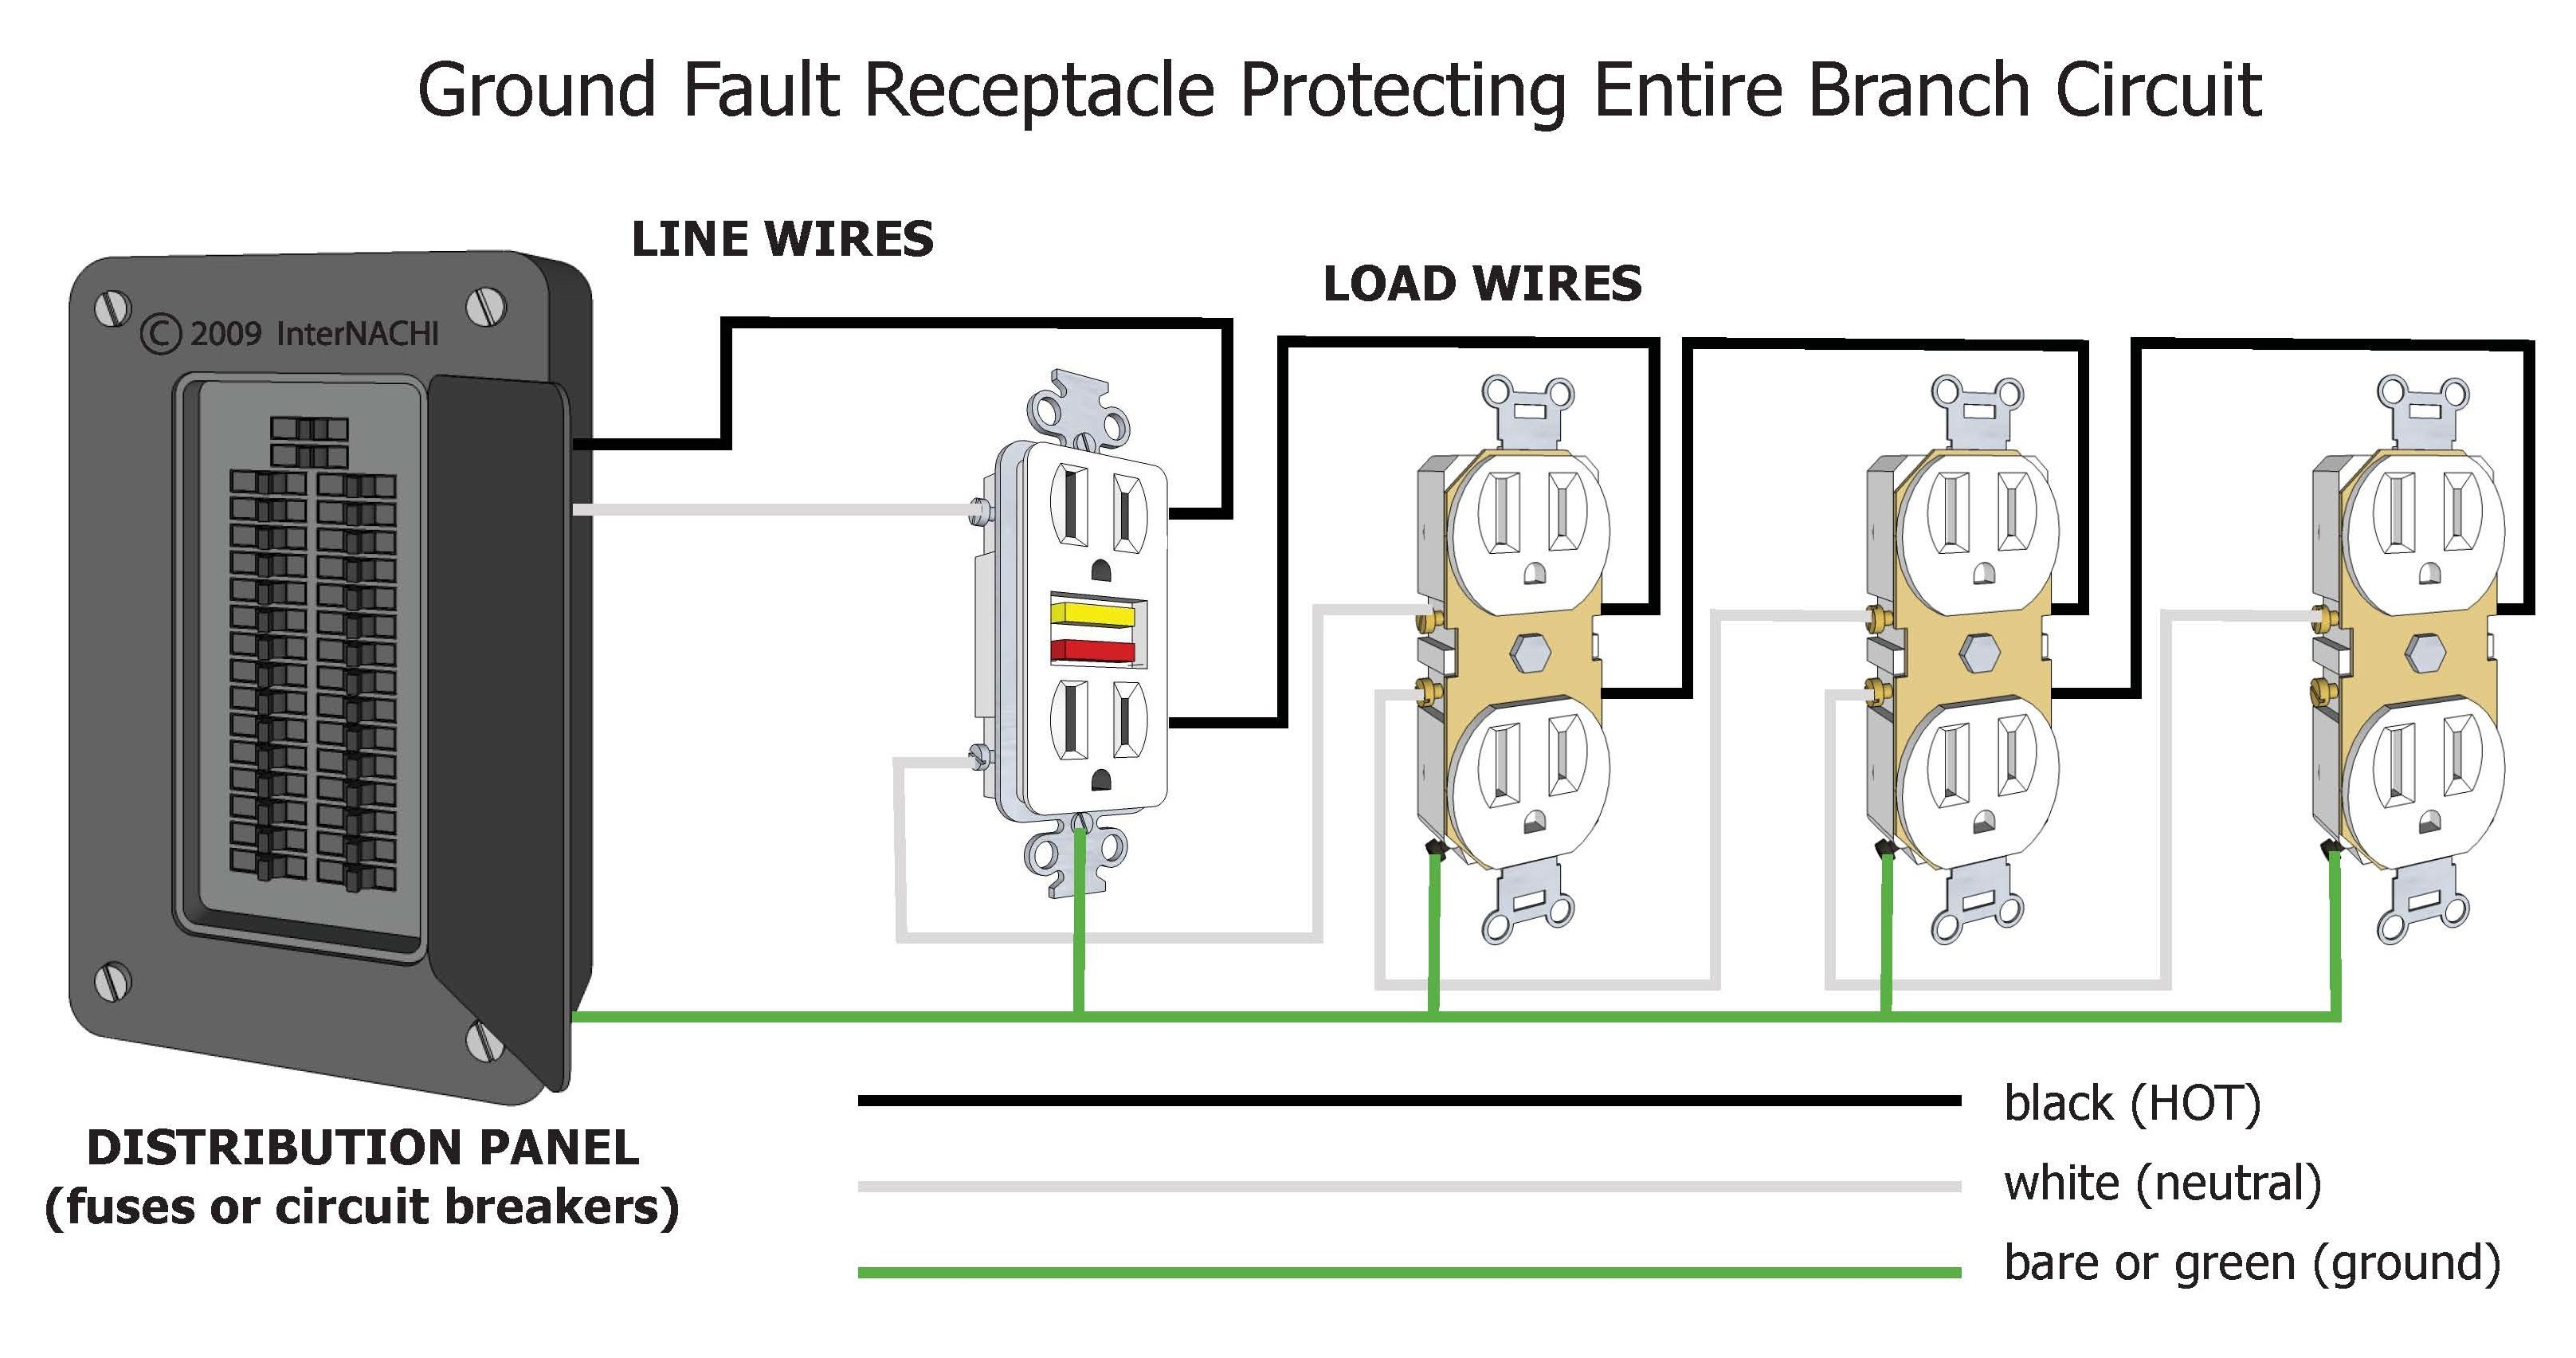 gfci branch circuit color gfci circuit breaker wiring diagram efcaviation com gfci wiring diagram at gsmx.co